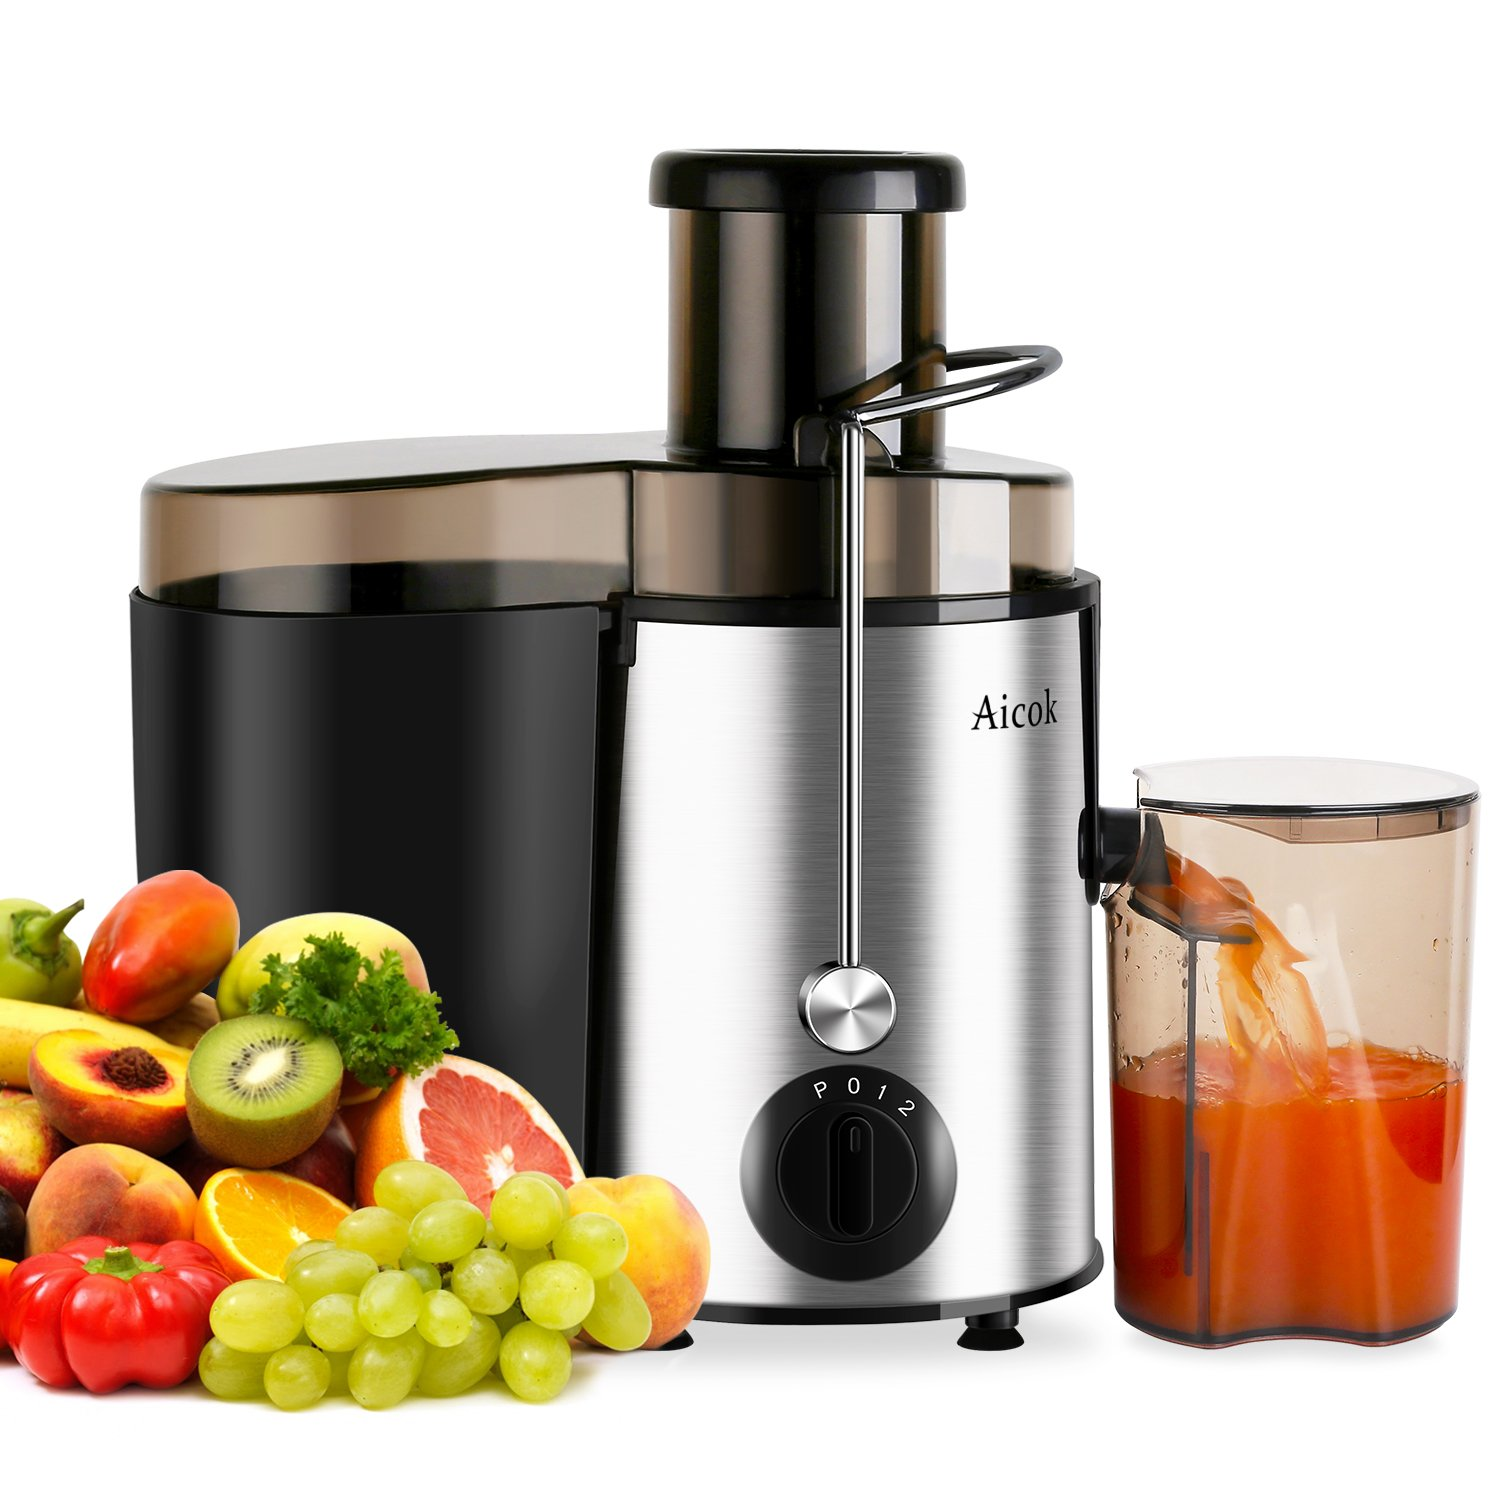 Best Slow Juicers 2018 : Best Masticating Juicer 2018, Reviews and Buying Guide